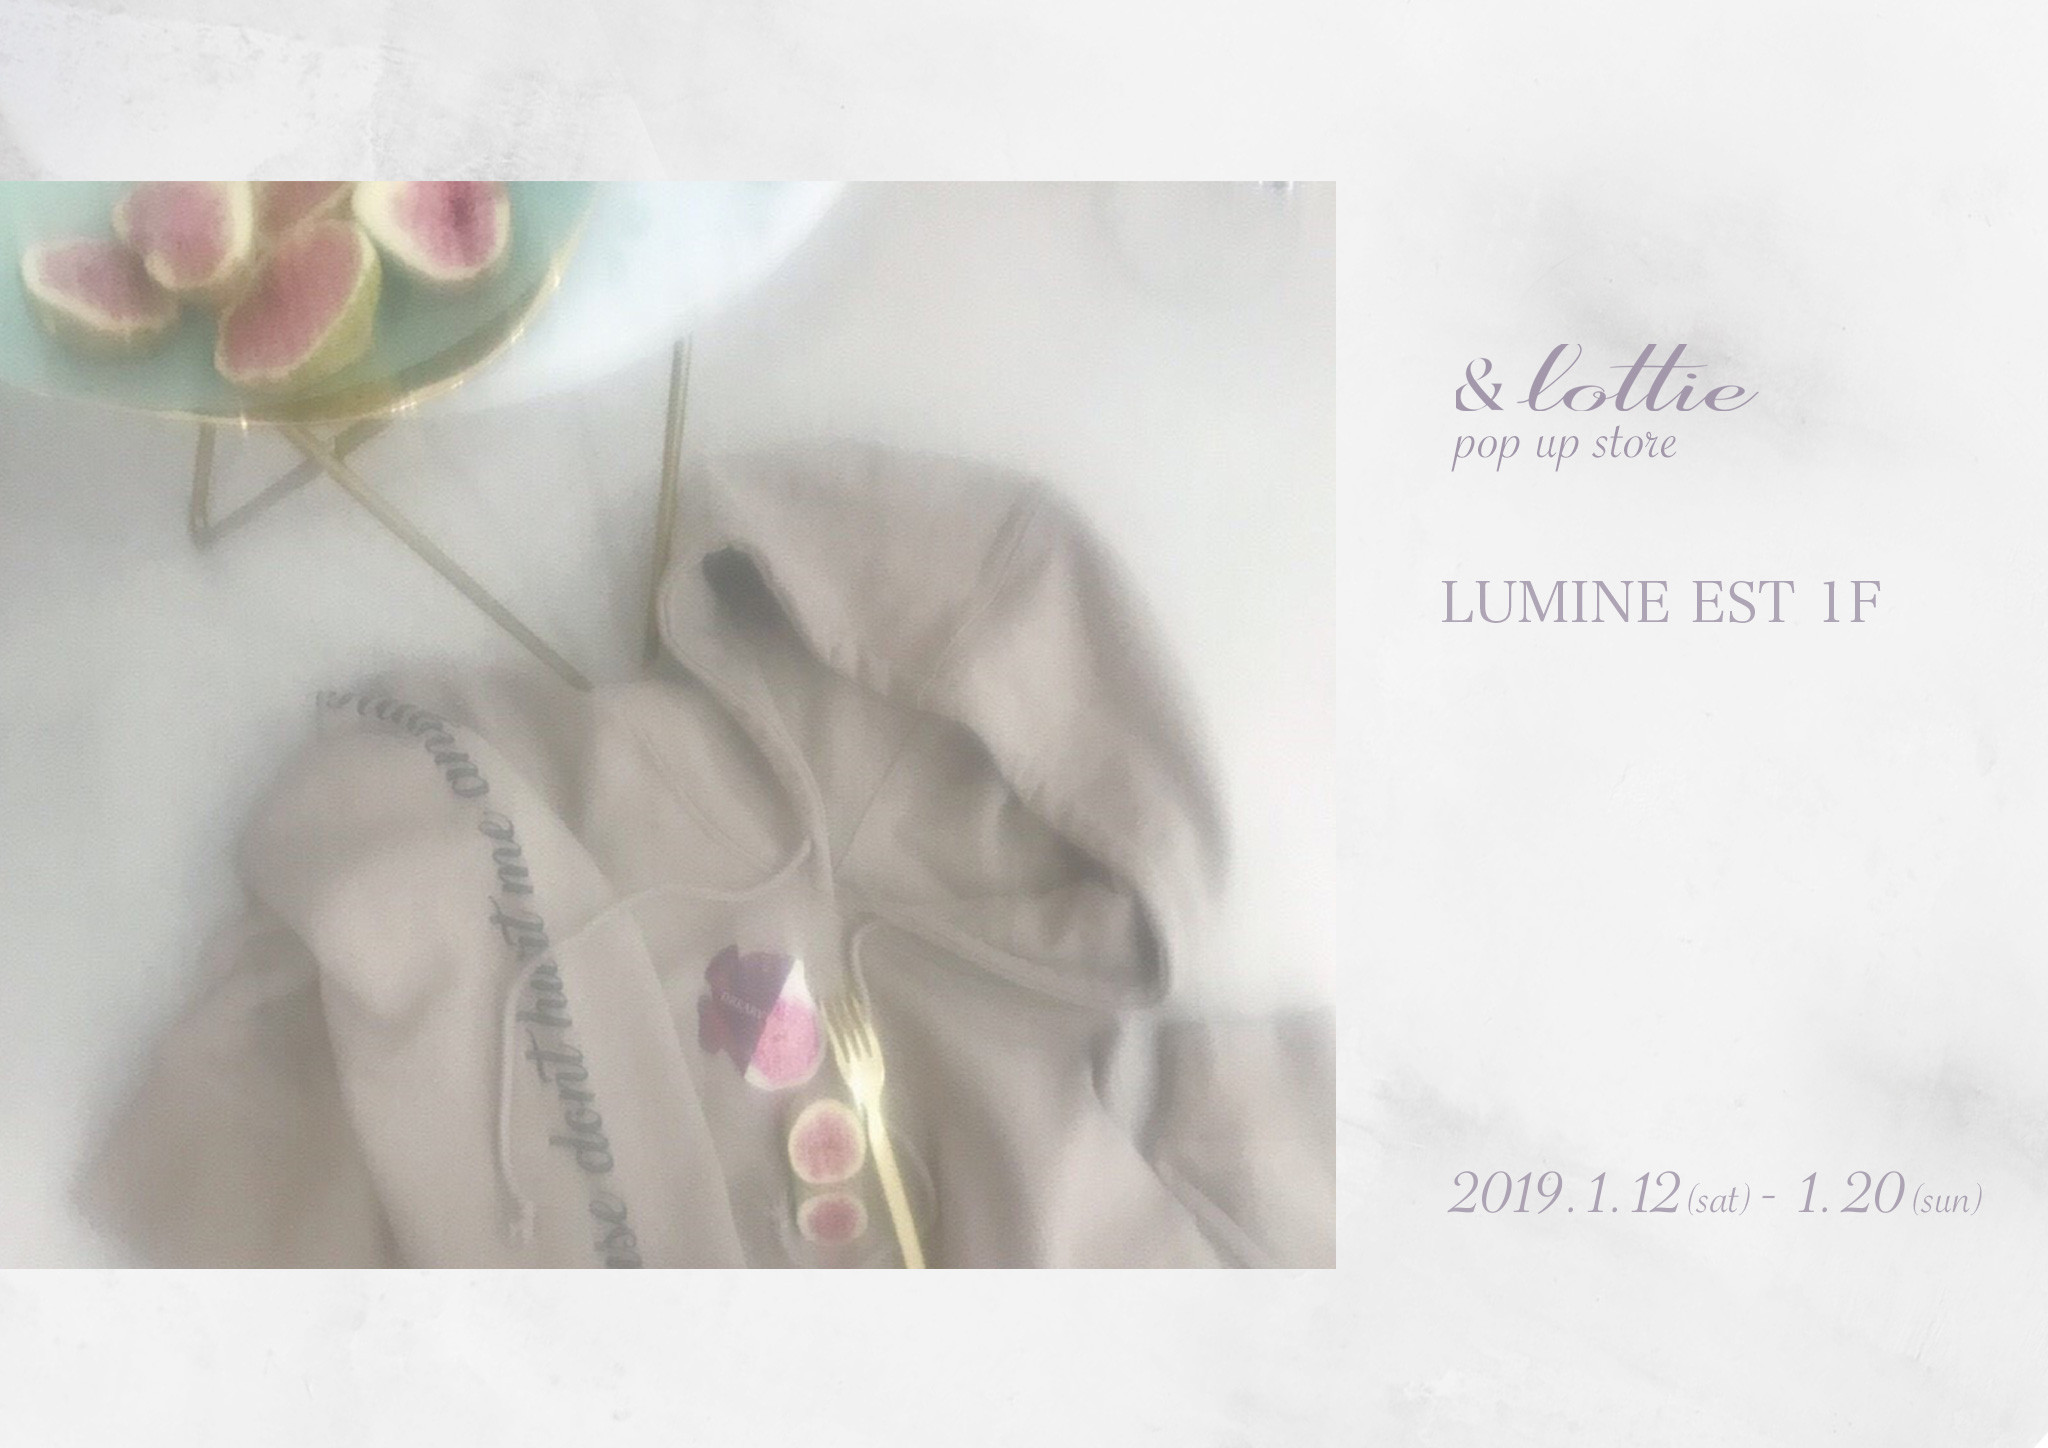 1.12-1.20 &lottie    LUMINE EST POP UP STORE